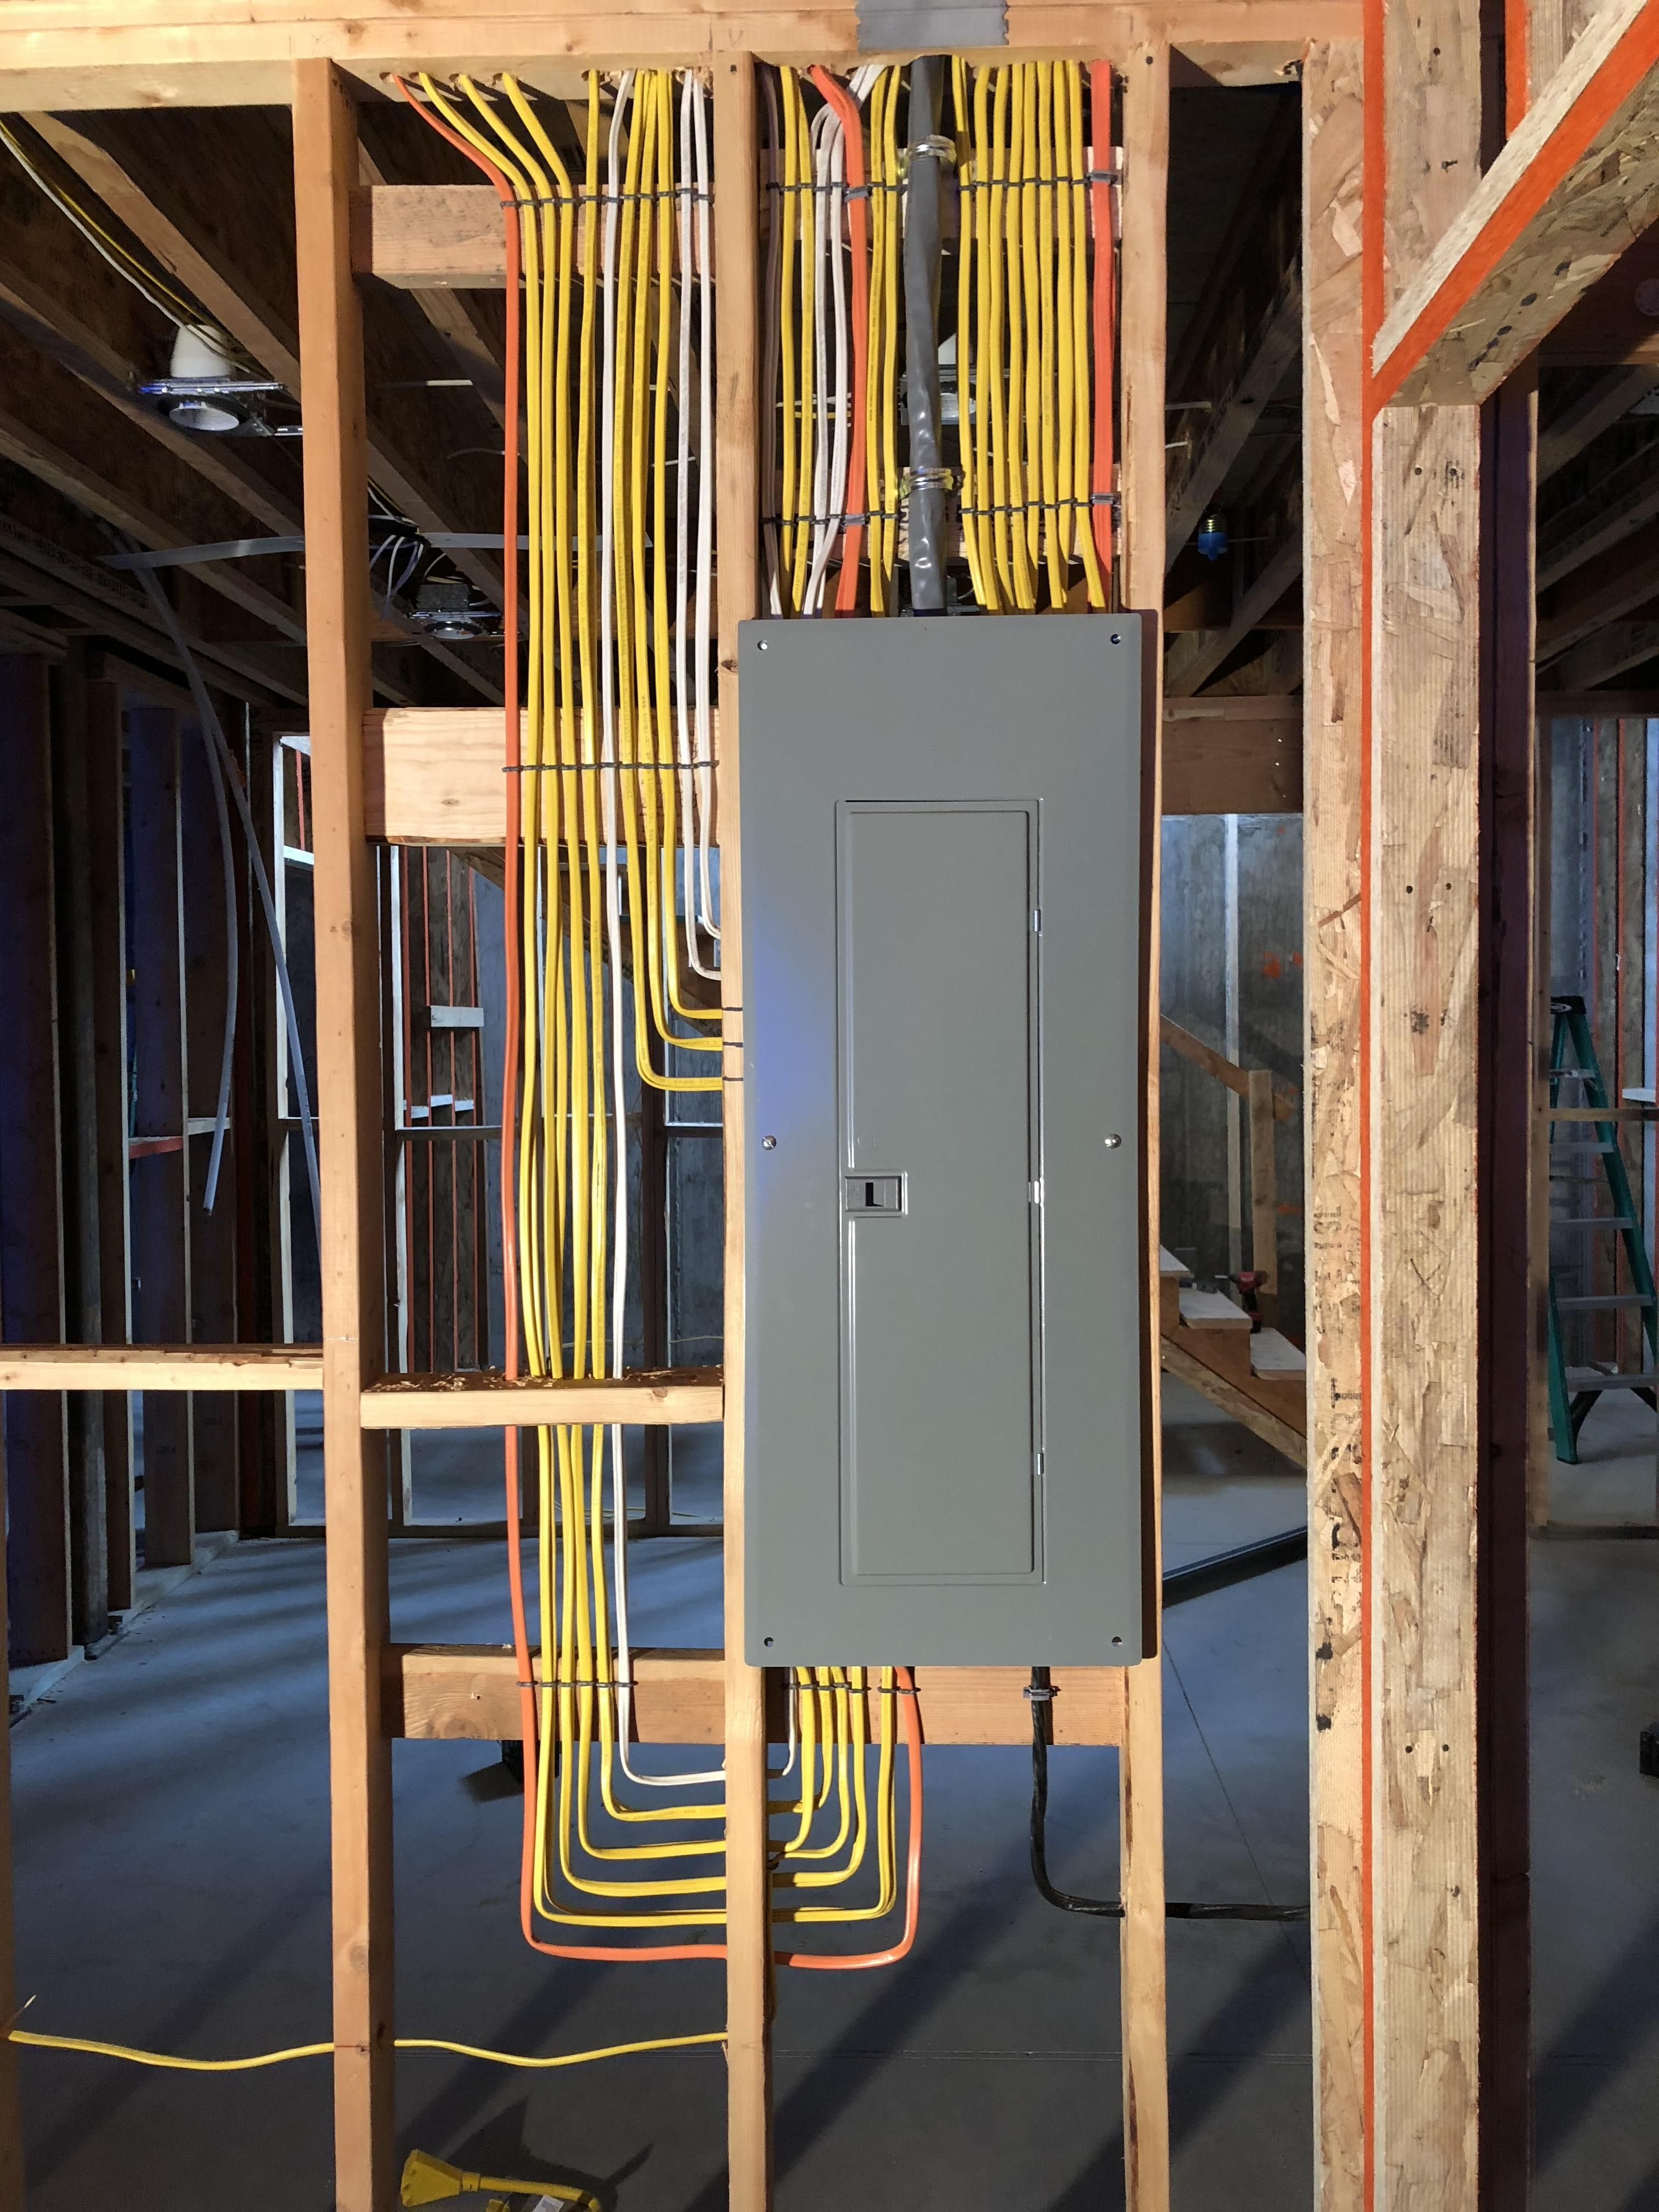 Pin by Kate Hannah on Interesting! | Locker storage ... New Home Wiring on